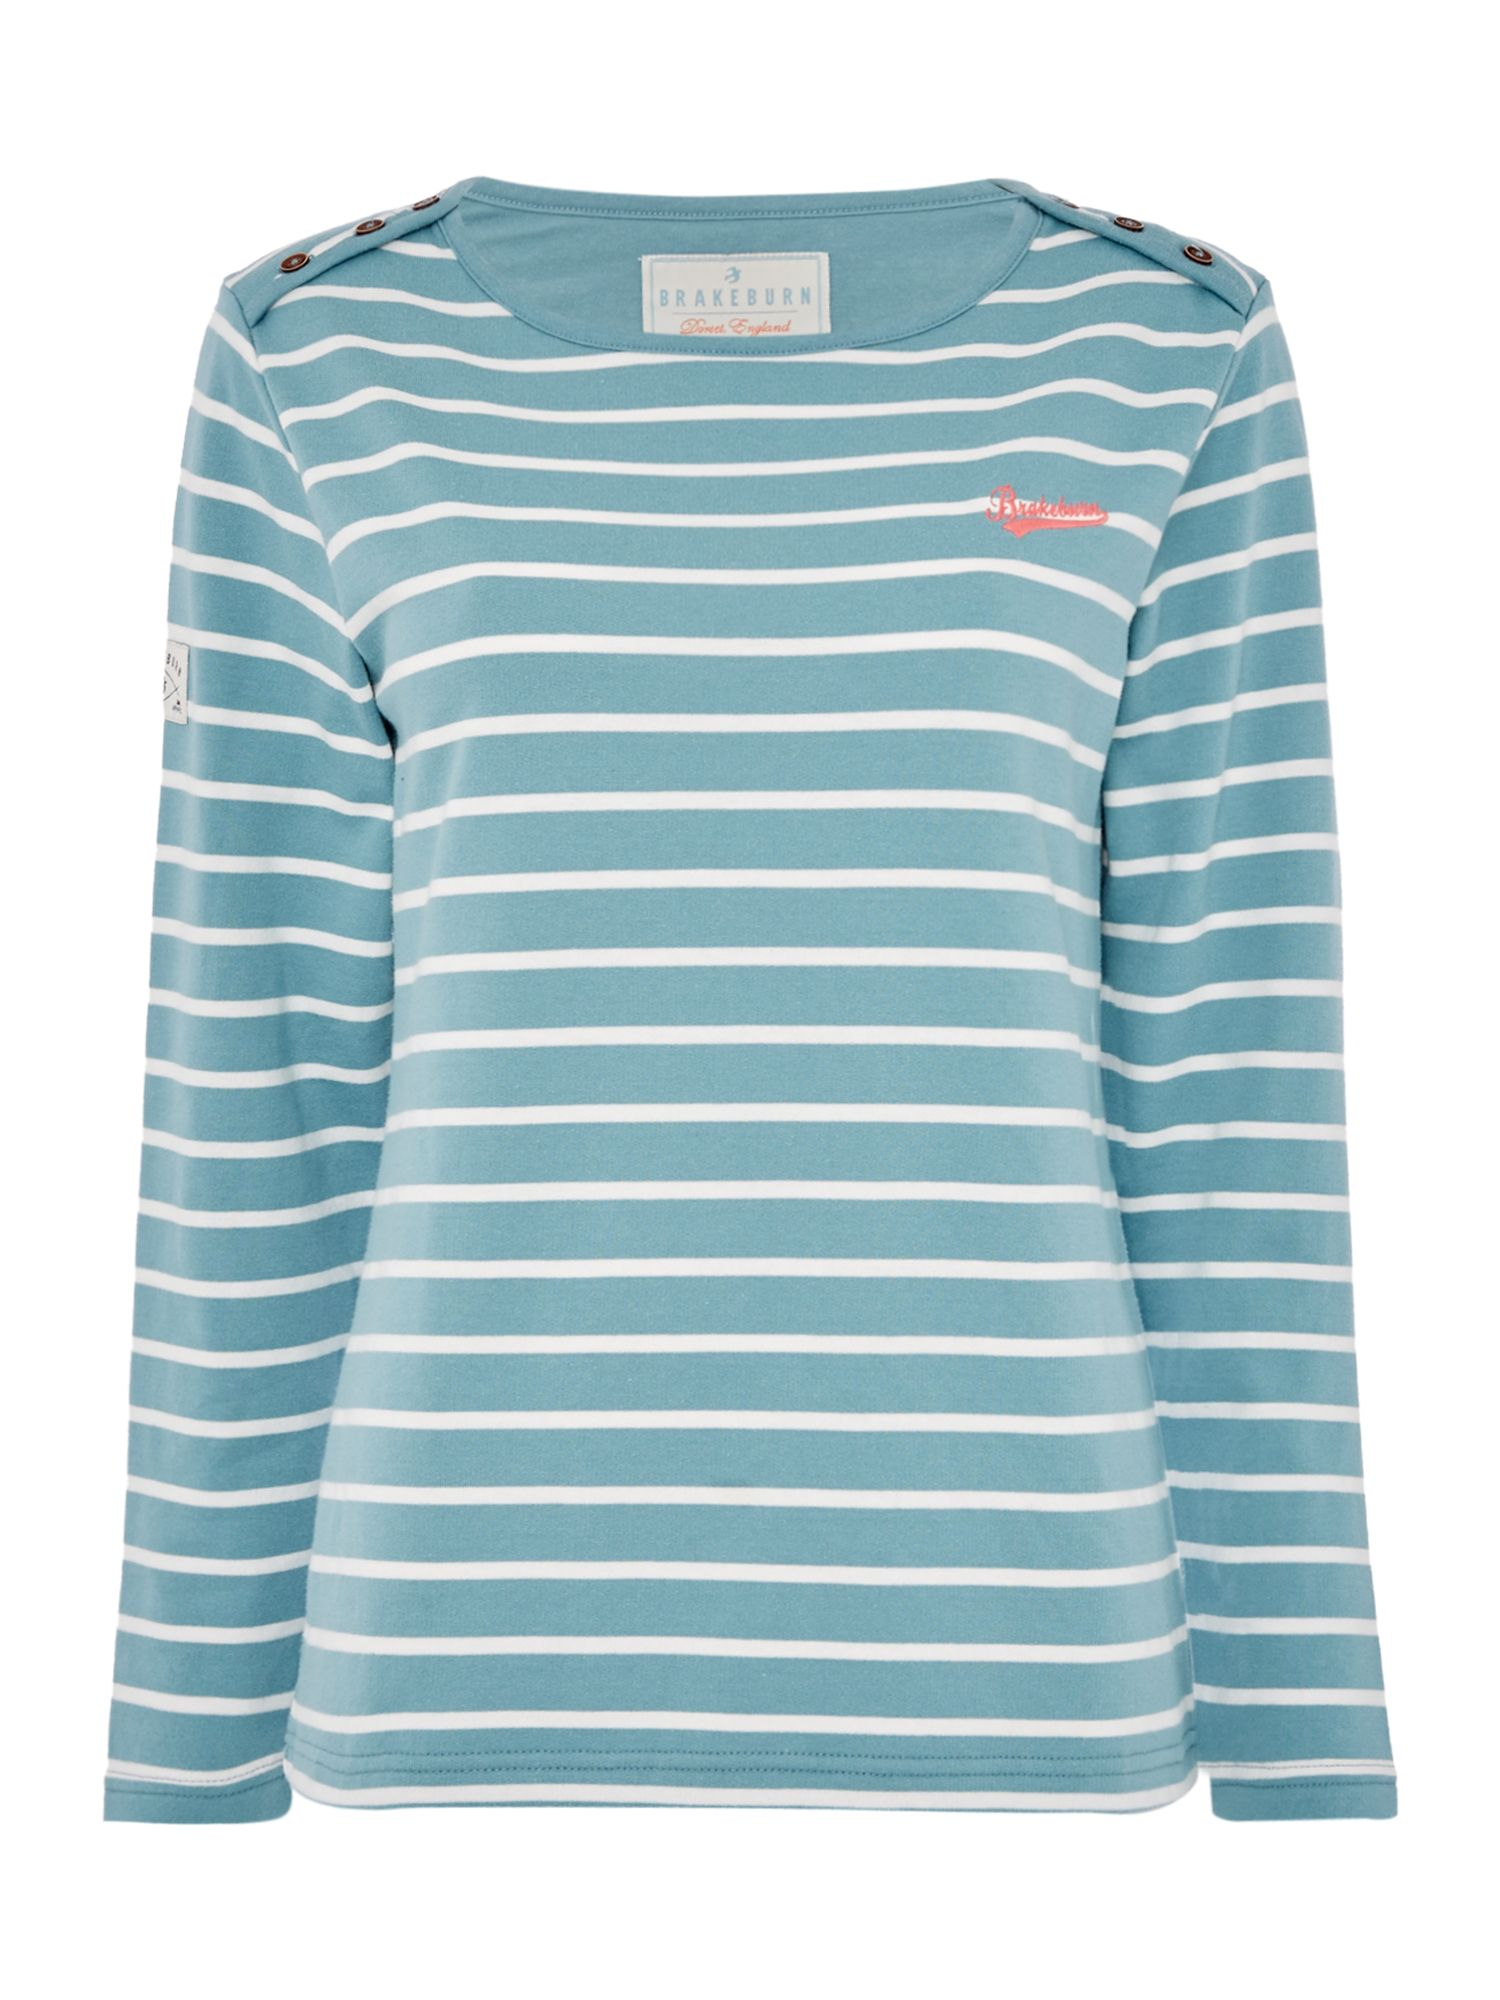 Brakeburn Bella Long sleeve Crew Neck Top, Blue